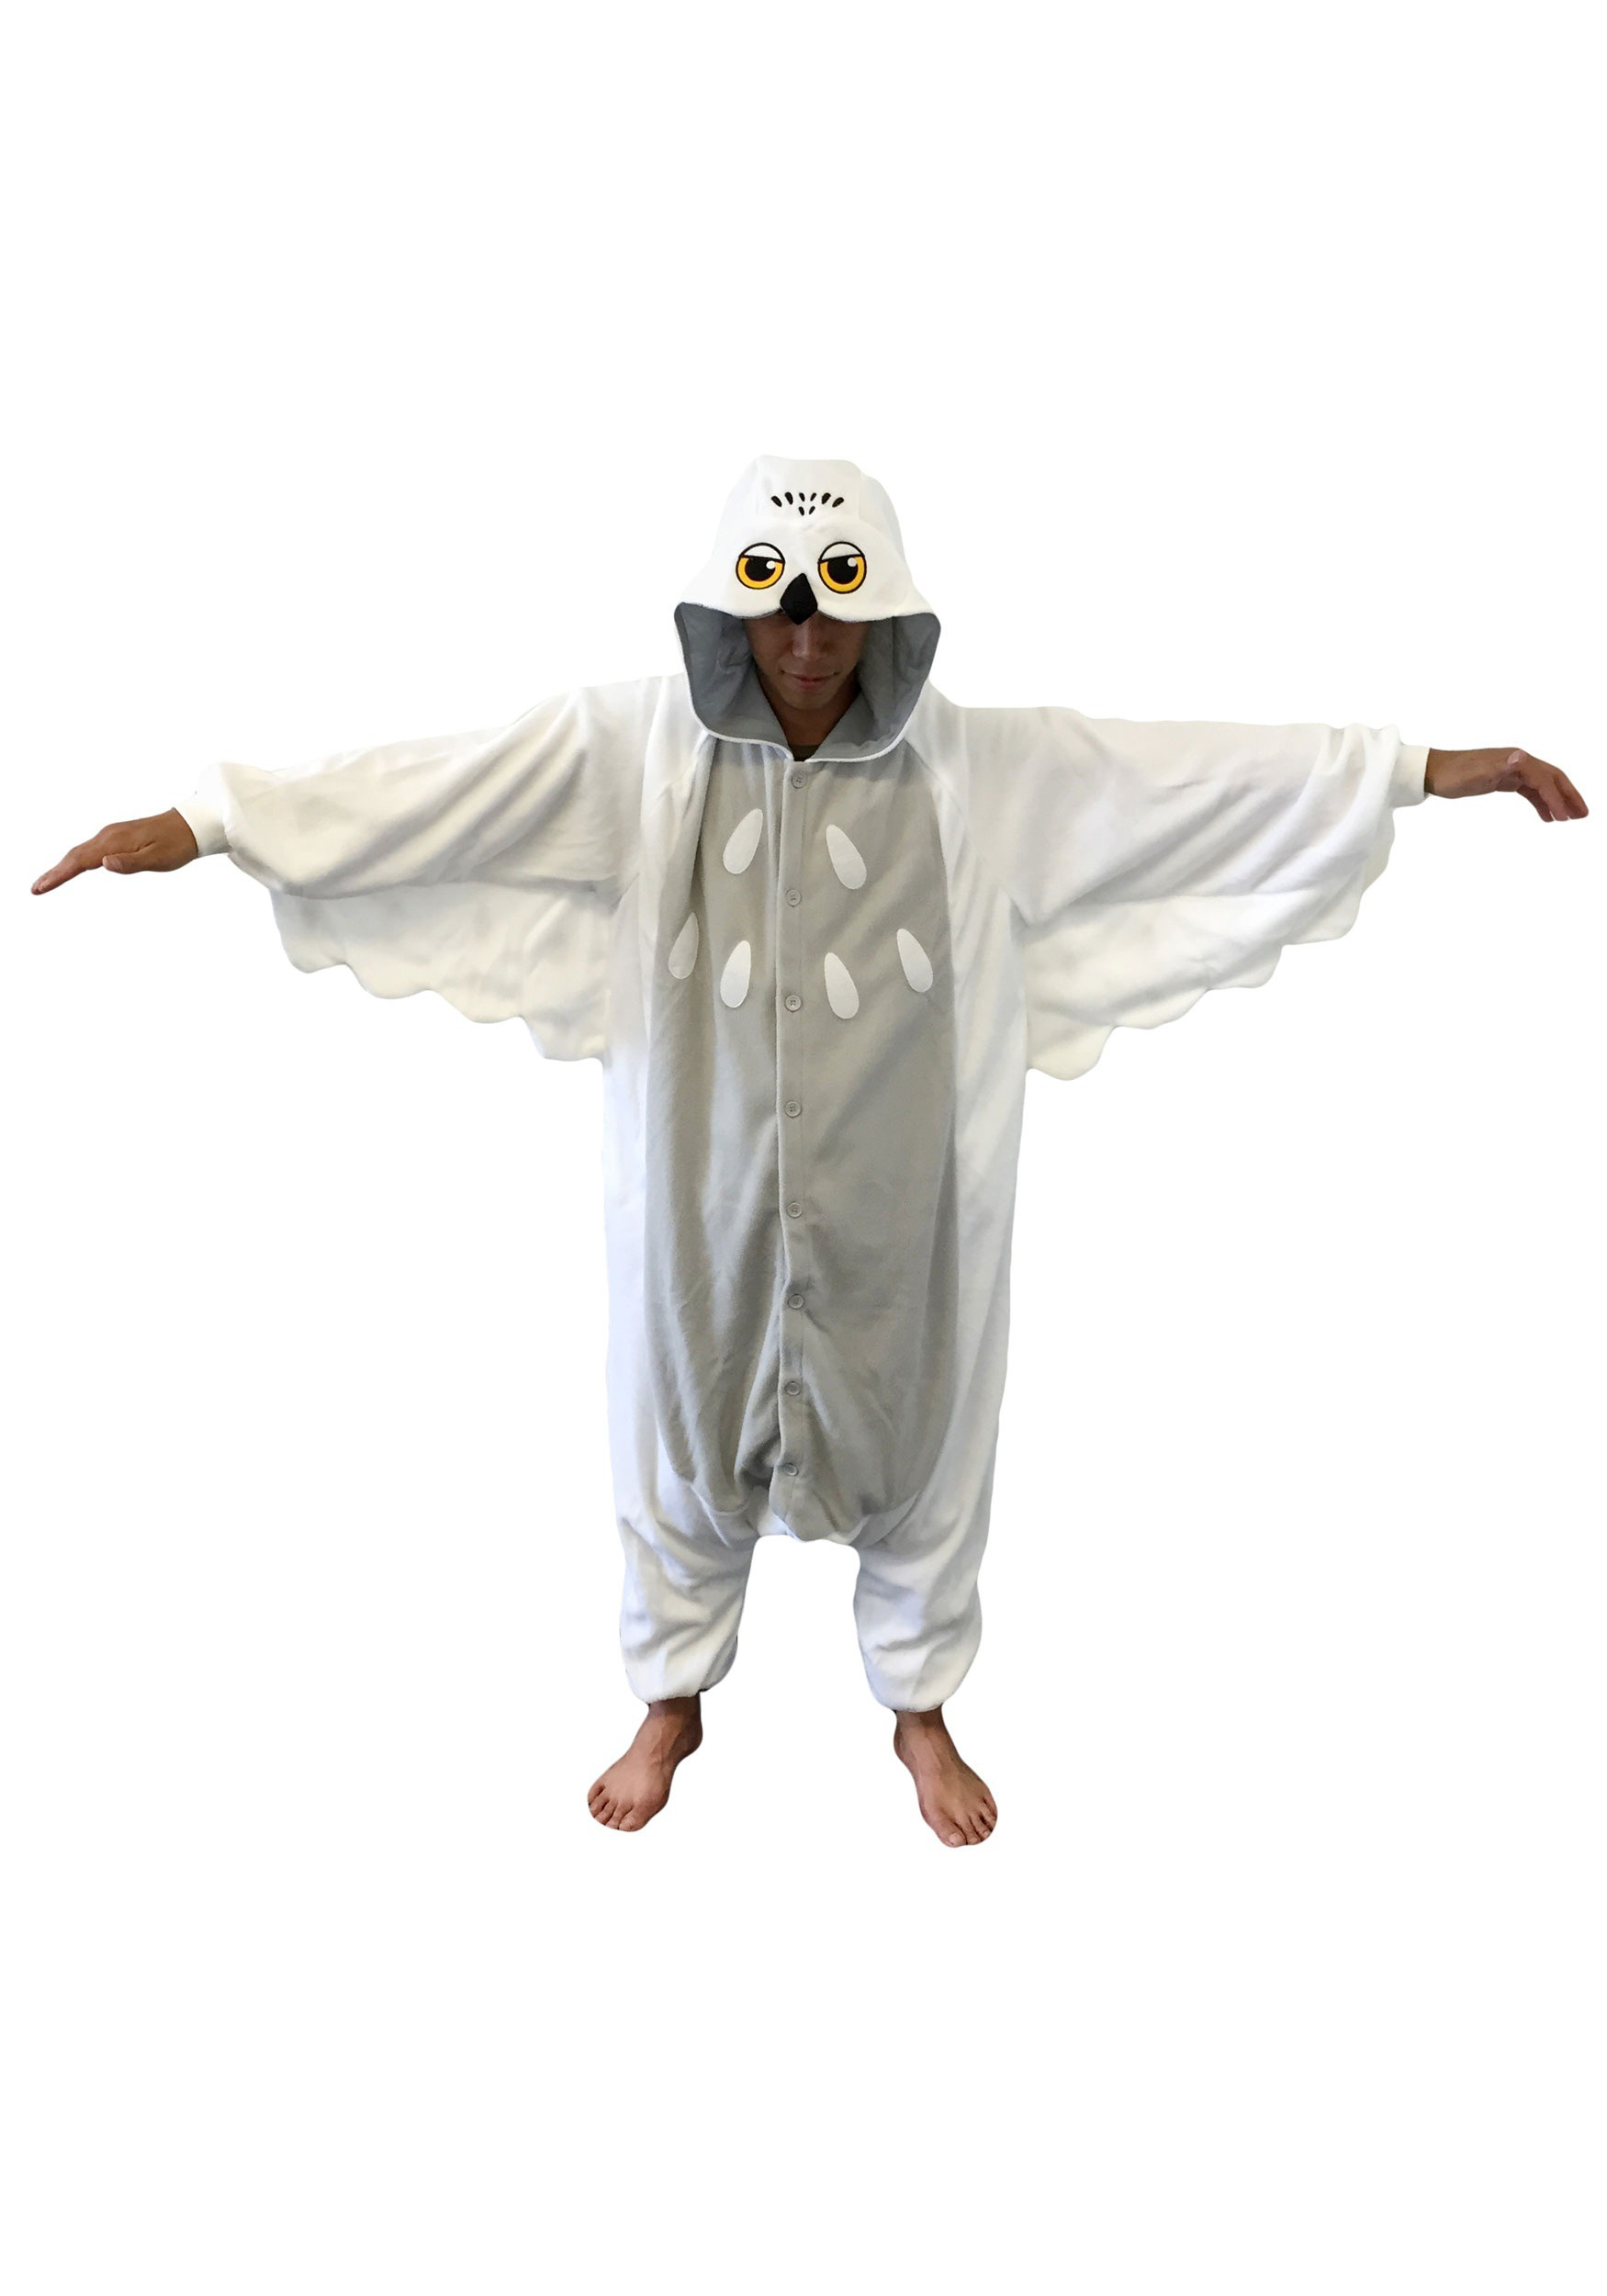 Results 181 240 of 644 for indoor halloween decorations - Snowy Owl Pajama Costume